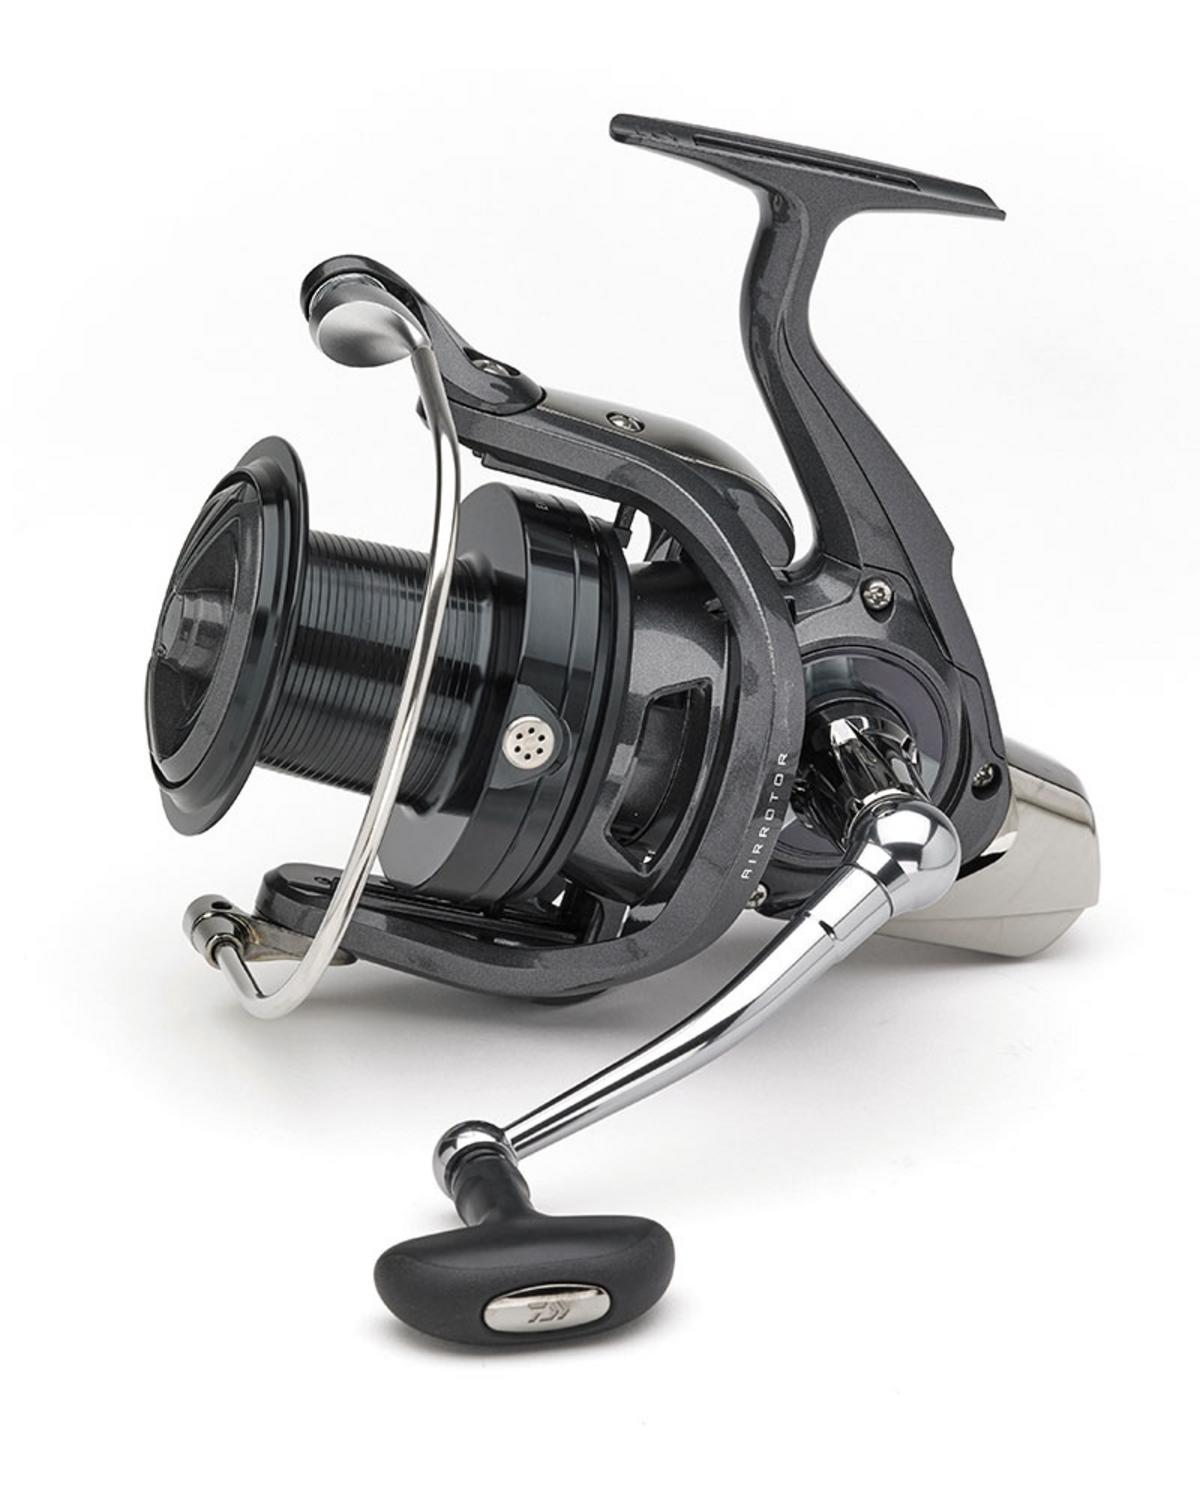 EX DISPLAY CLEARANCE  DAIWA EMBLEM QDA CARP FISHING REEL EMB5000QDA